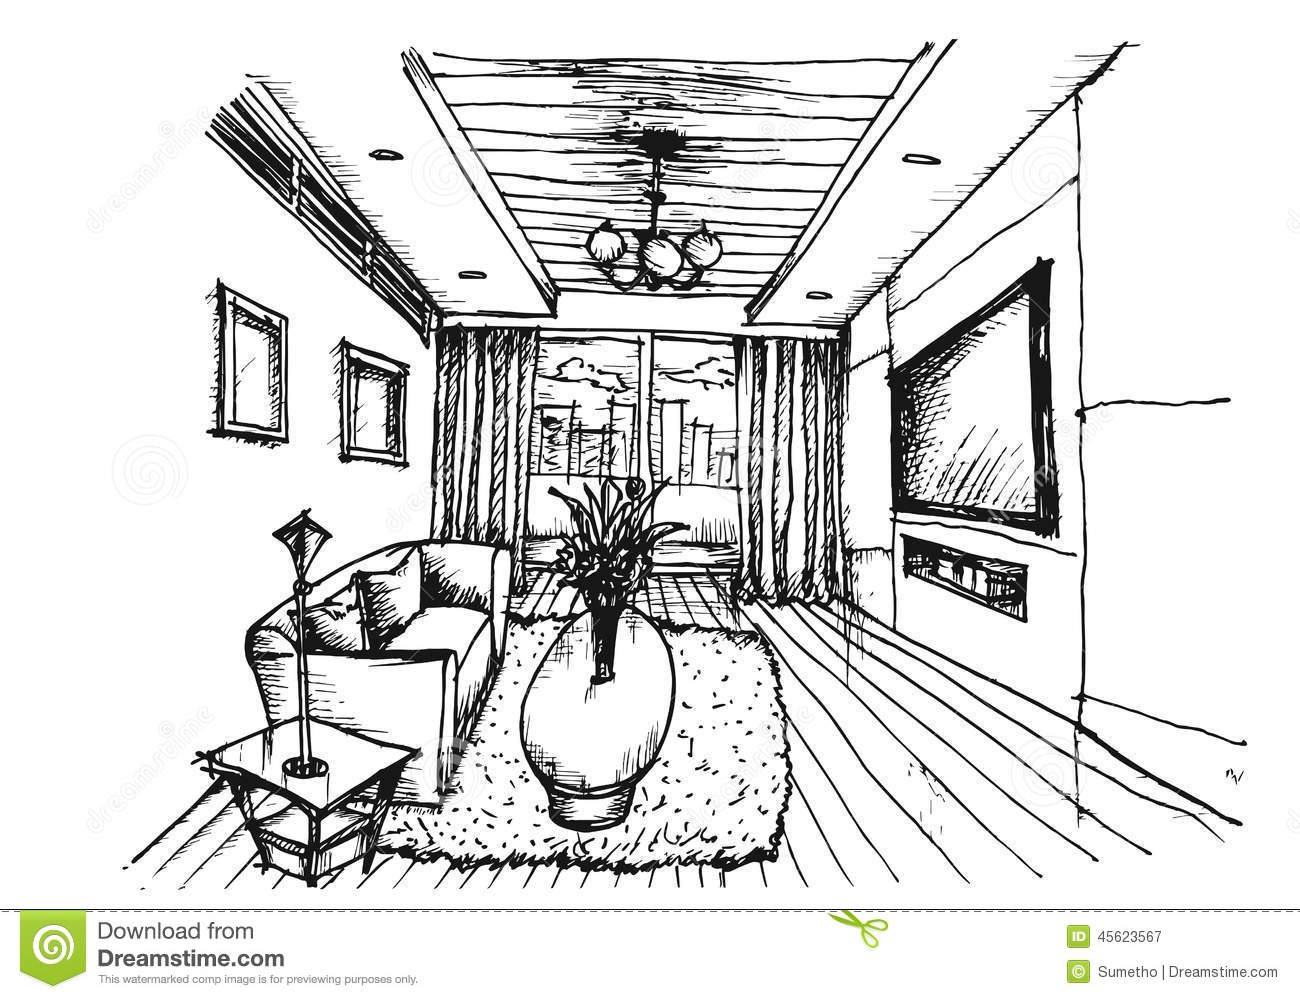 Living room drawing design - Hand Drawing Interior Design For Living Room Royalty Free Stock Photography